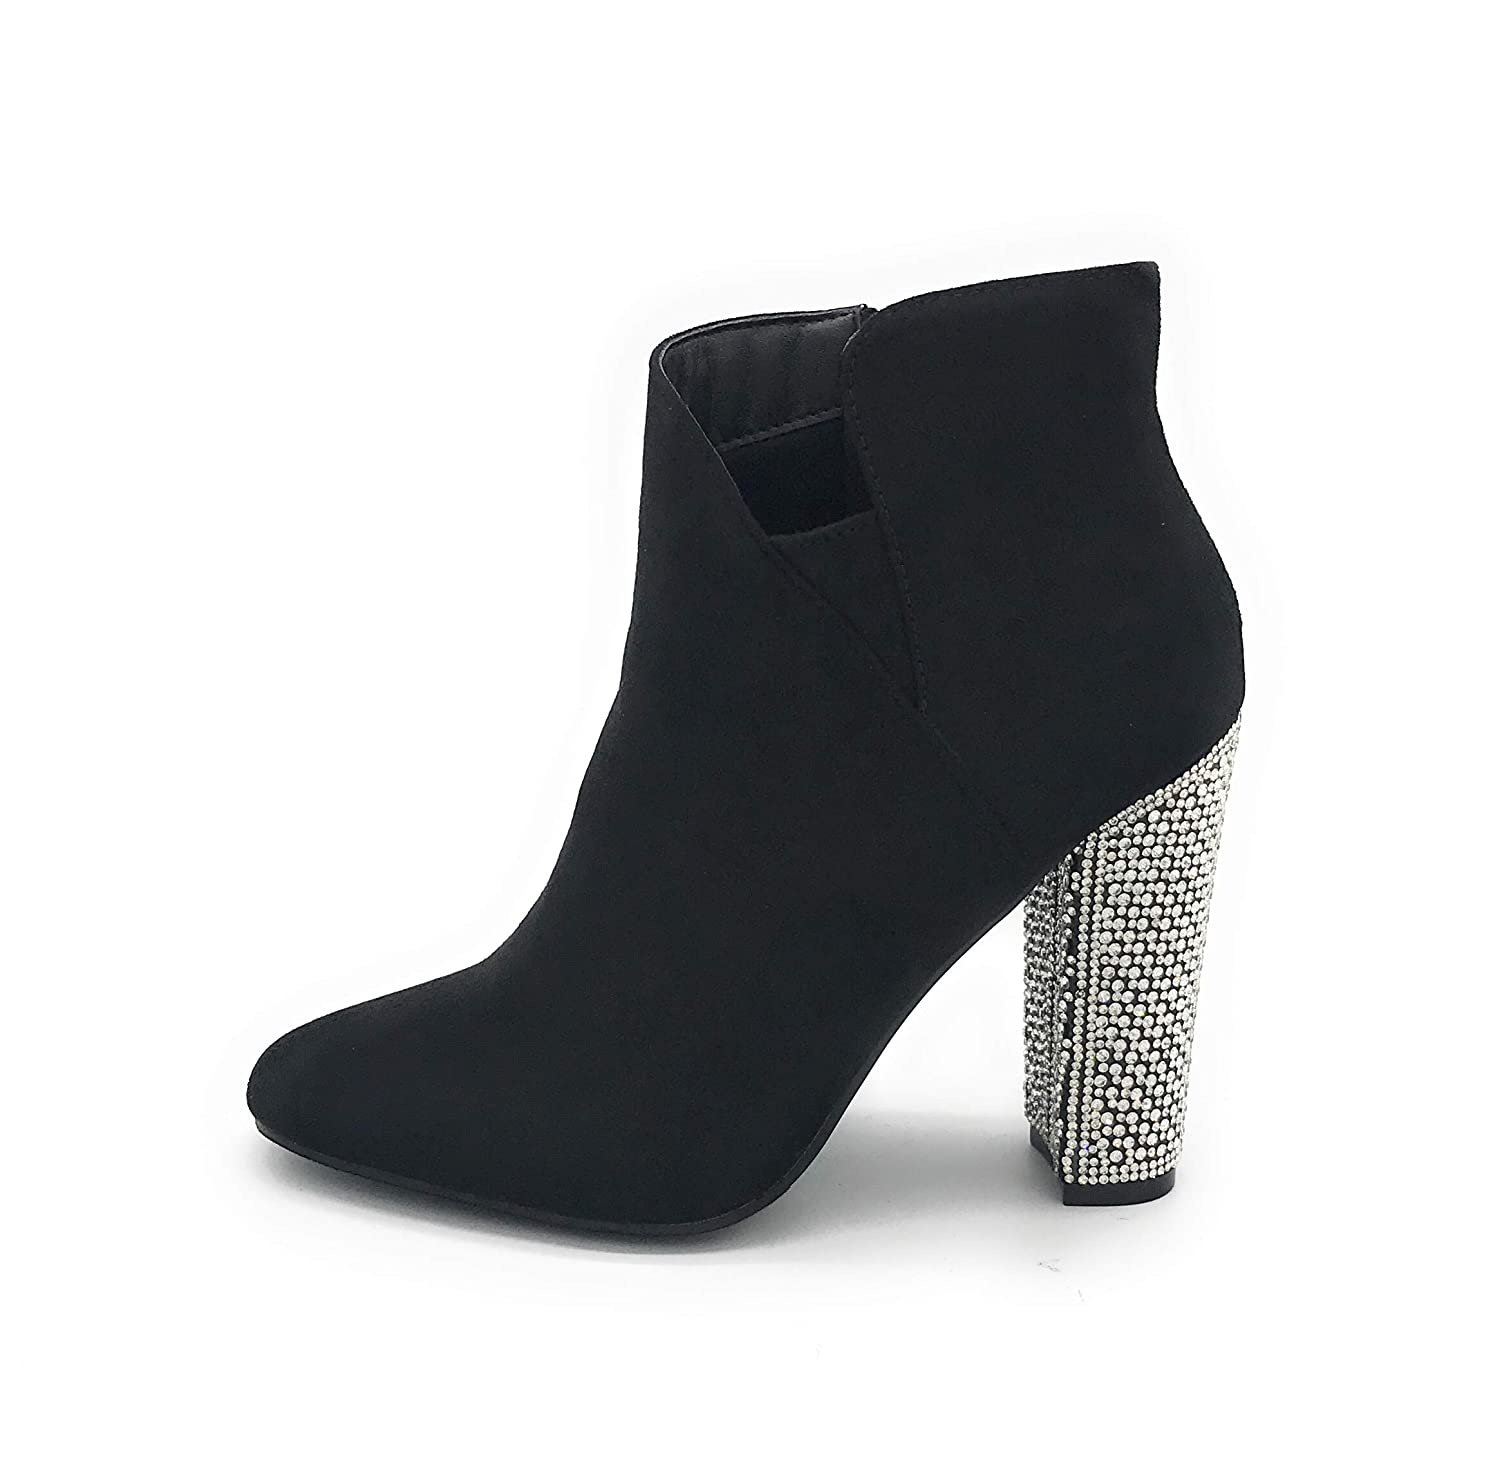 03black J Mark EASY21 Women Fashion Ankle Rhinestone Boots Casual Short Bootie shoes